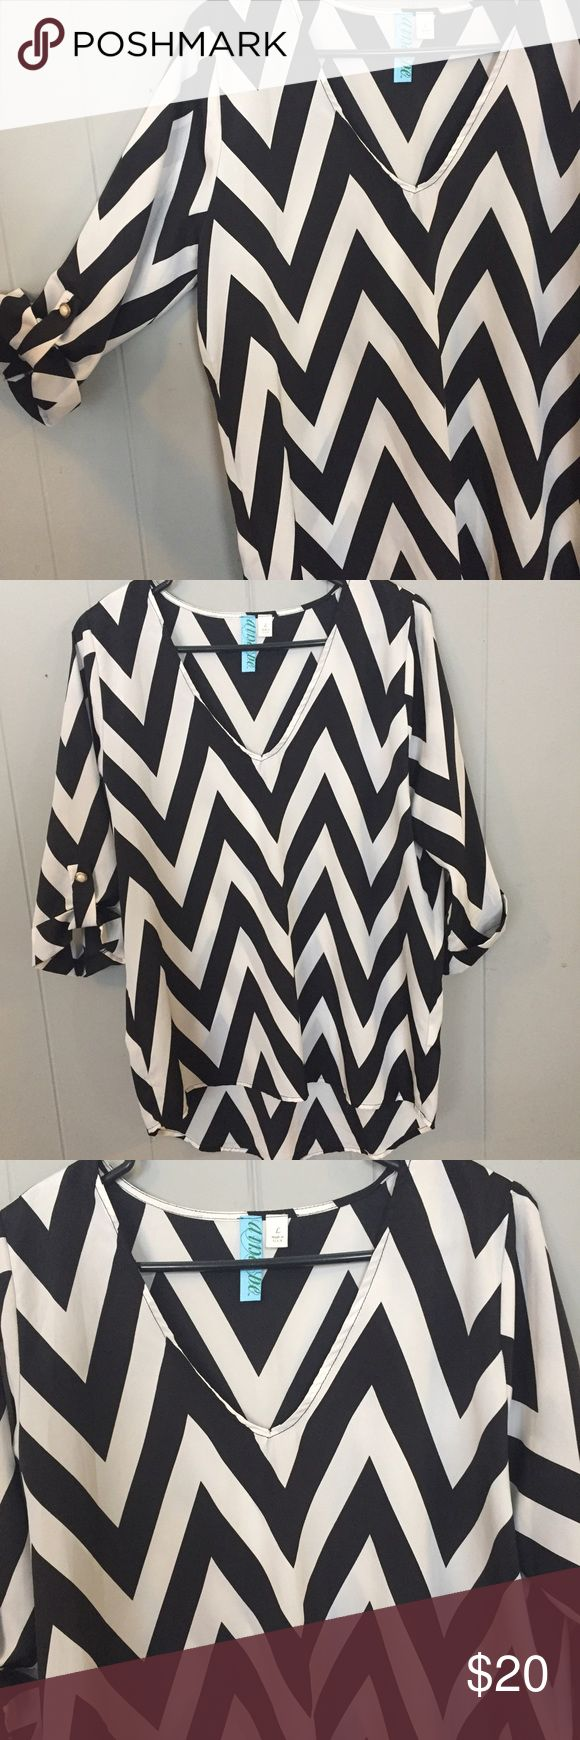 Francesca's black and white chevron blouse Francesca's black and white chevron blouse. ¾ length sleeves with button Pre-owned – great condition. No major signs of wear. Made of 100% polyester Size large Measurements (approximate) Underarm to underarm: 21 inches Shoulder to hem: front – 26 inches – back – 30 inches Francesca's Collections Tops Blouses